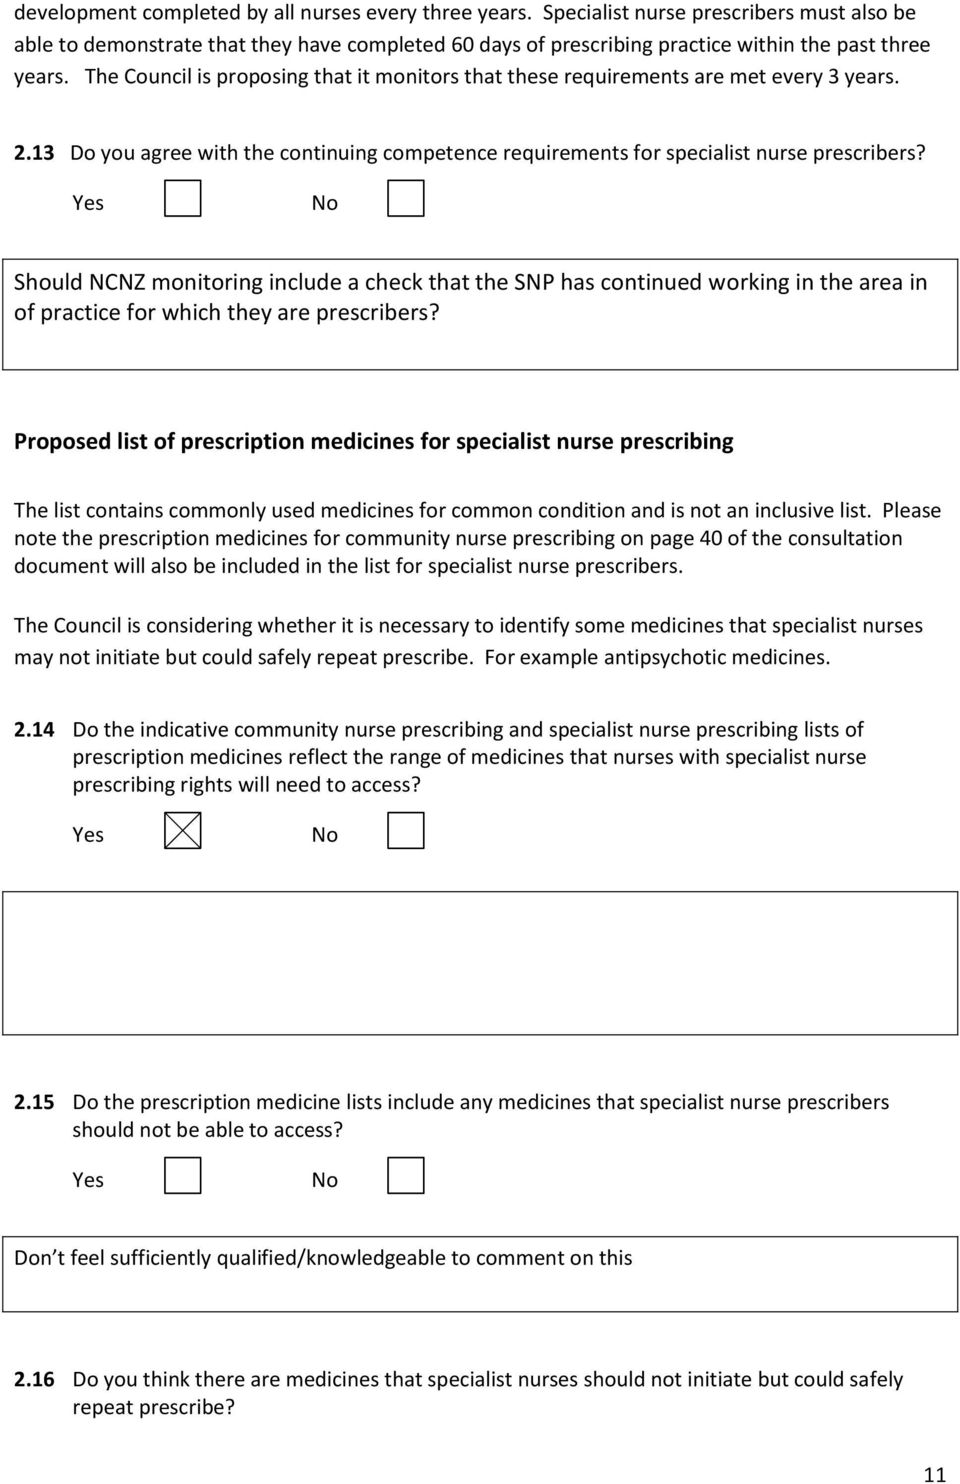 The Council is proposing that it monitors that these requirements are met every 3 years. 2.13 Do you agree with the continuing competence requirements for specialist nurse prescribers?